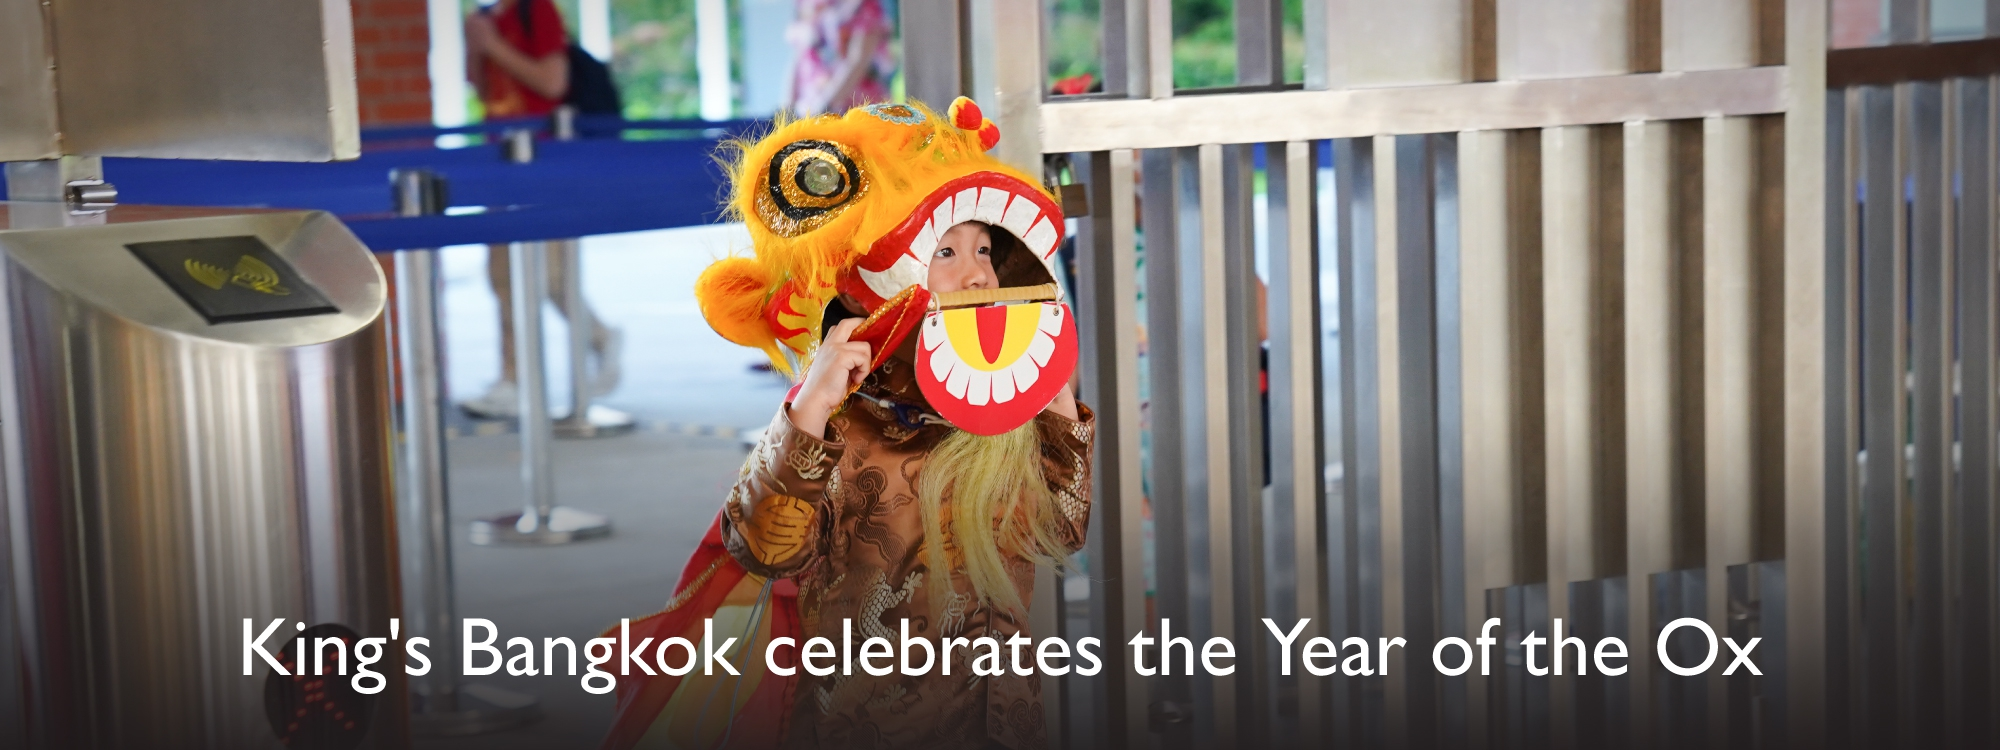 Celebrates the Year of the Ox.